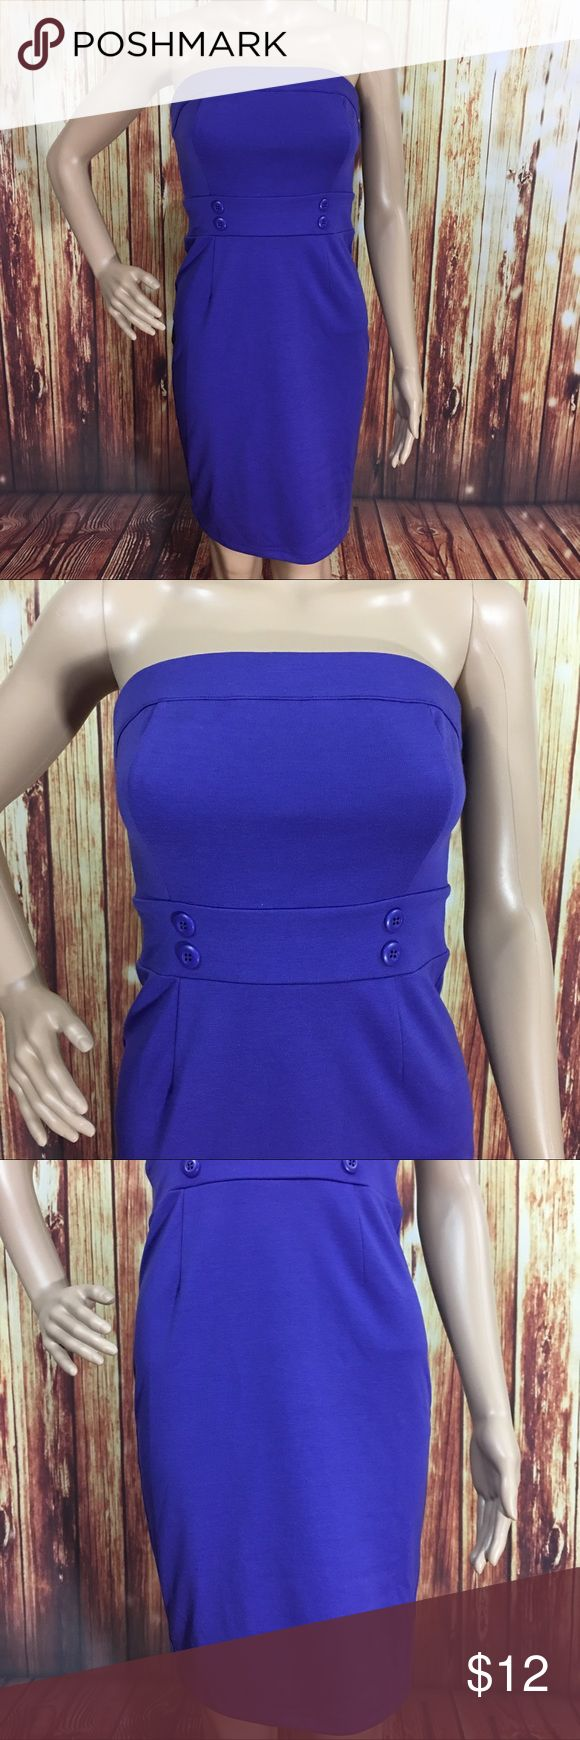 """Forever 21 purple Strapless Bodycon dress Zip Up Purple Bodycon dress by forever 21. Zips up in the back. In great condition, has been gently used. Length: 30"""" bust: 30-35"""" . Dress is very stretchy and will hug your body . Forever 21 Dresses Mini"""